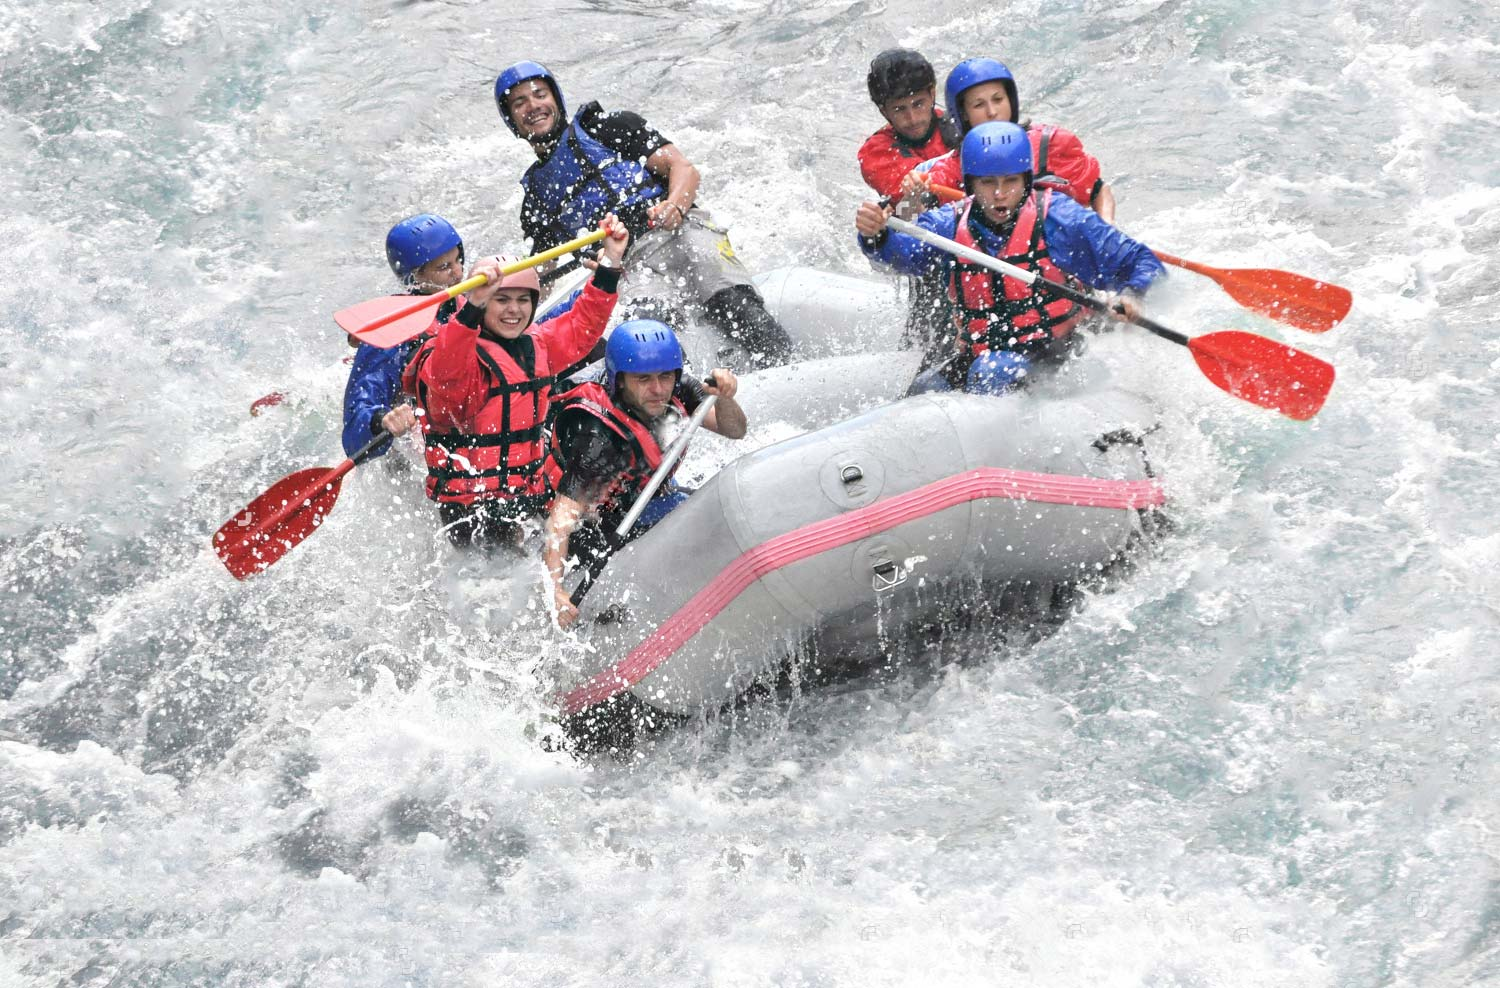 stock-photo-rafting-extreme-and-fun-sport-151292609